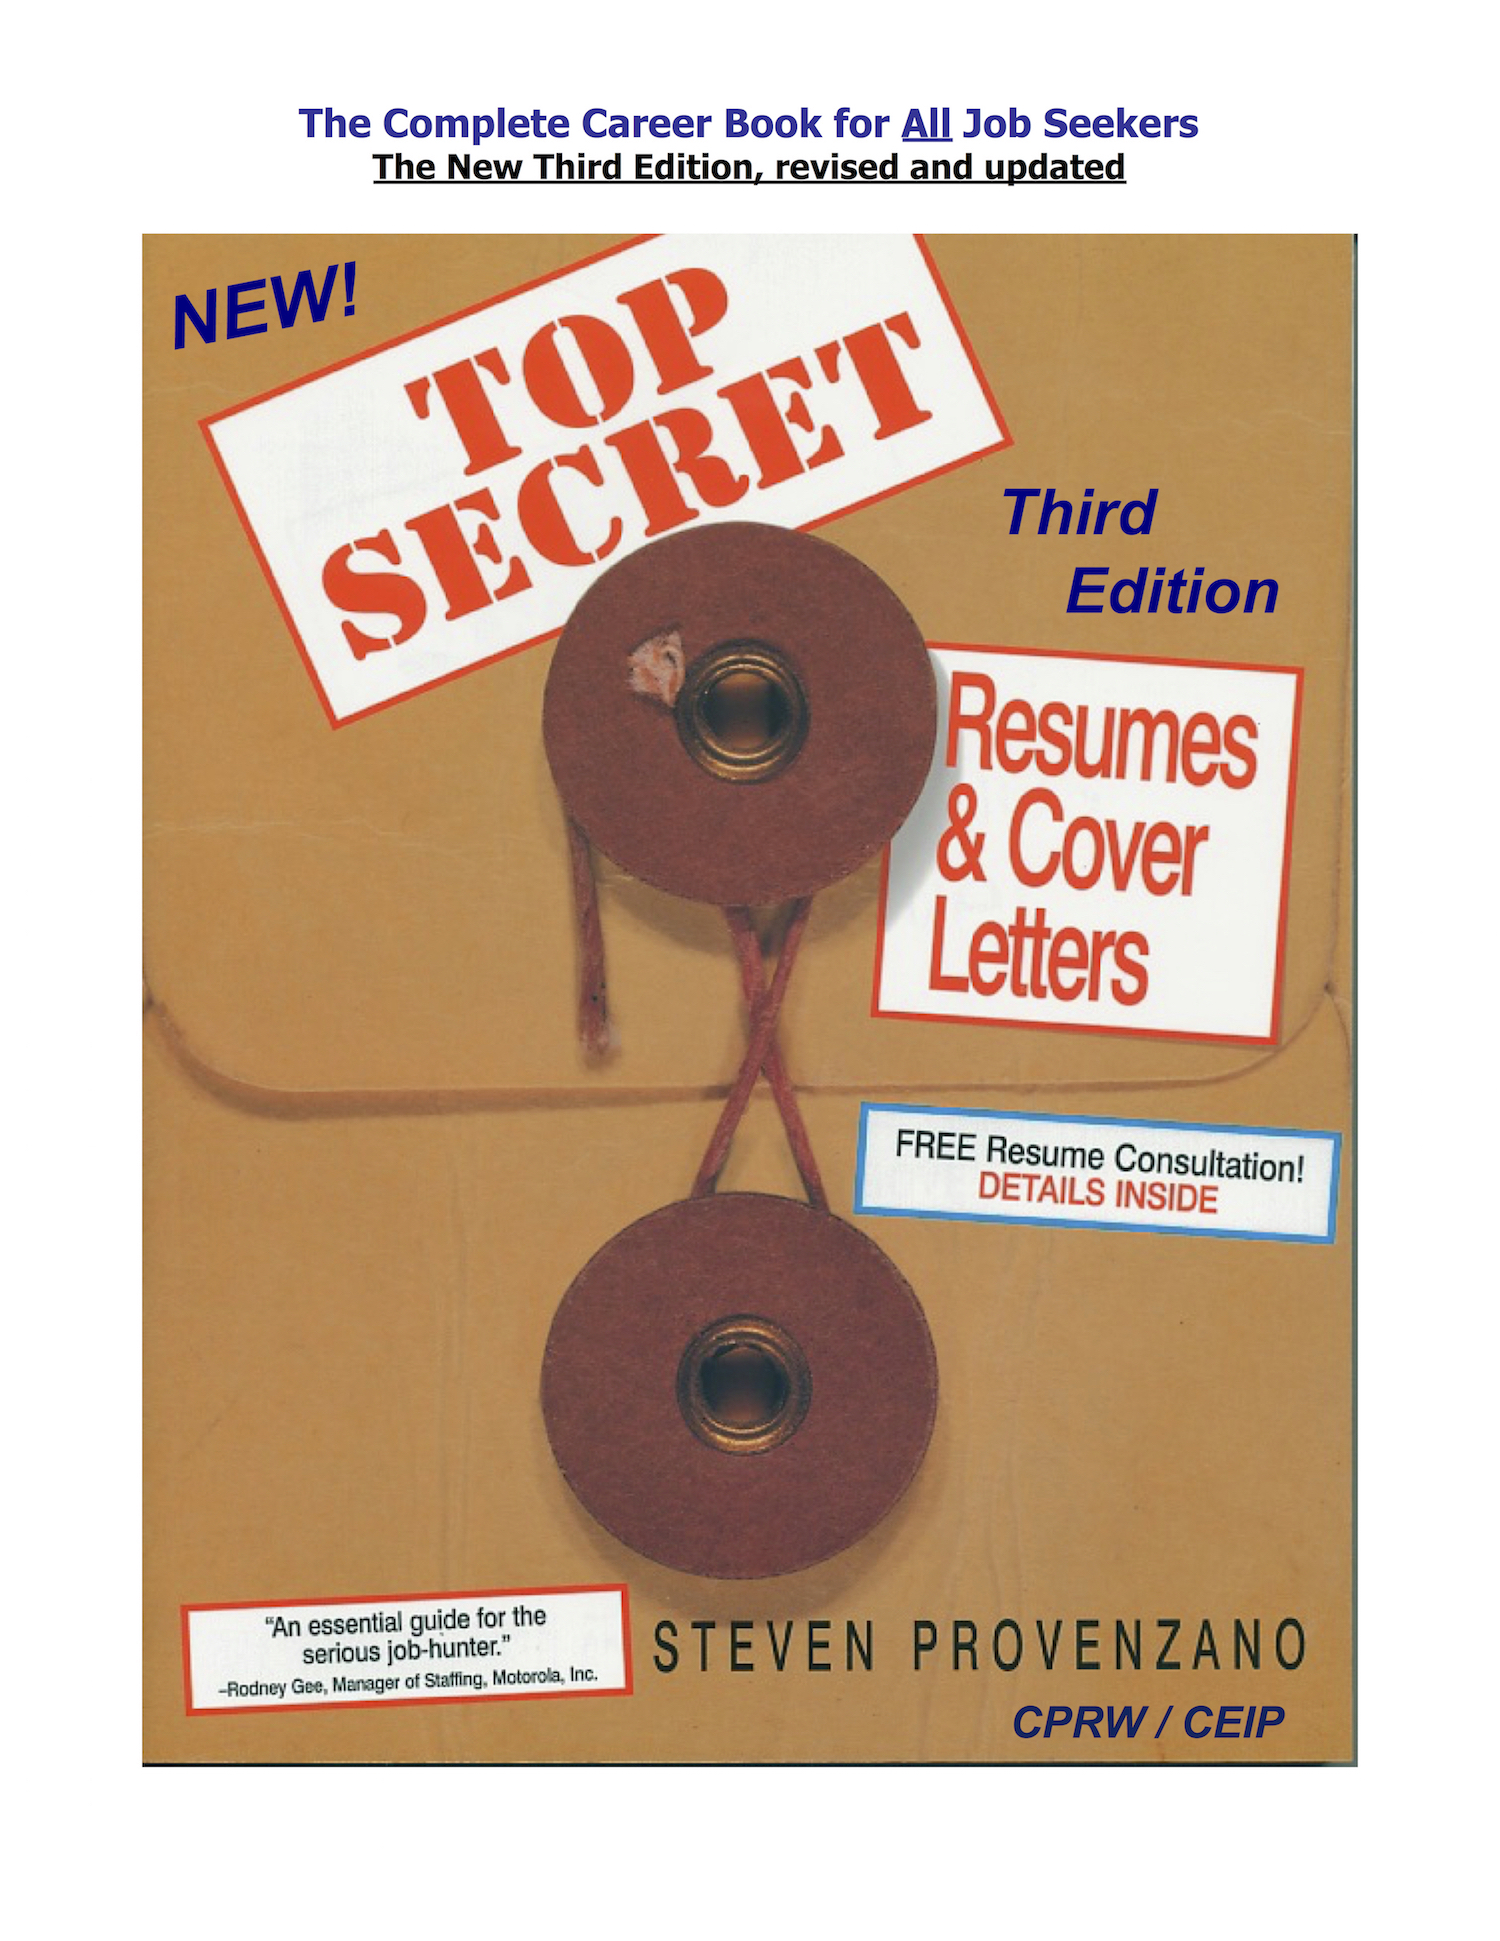 Top Secret Resumes, 3rd Ed.: The New, Complete Career Guide for All Job Seekers